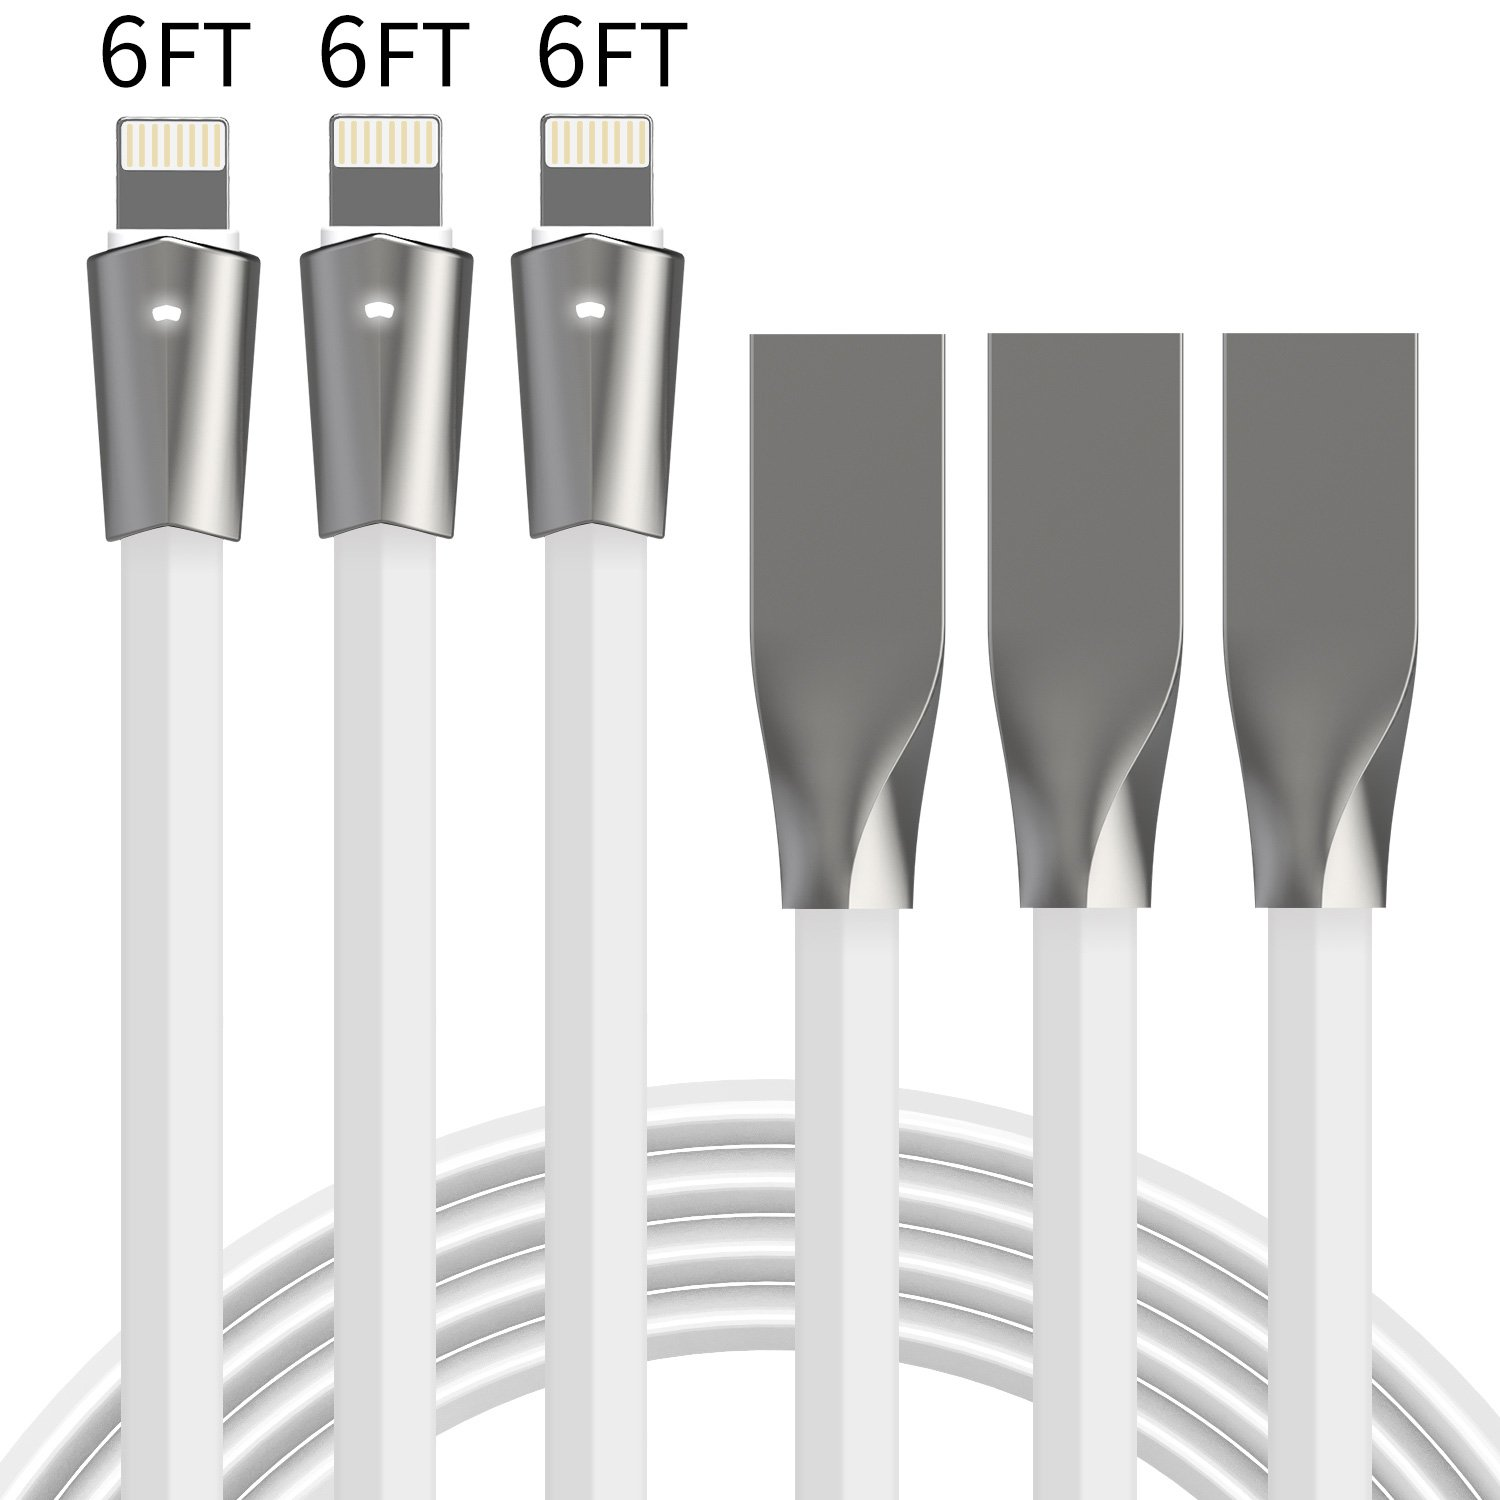 Aimus Phone Charger Cable, 3 Pack 6FT+6FT+6FT Data Cable Line with LED Light USB Charger Cable Gaming Charging Cable Cord Compatible with iPhone X/8/8 Plus/7/7 Plus/6/6s/5/5S, iPad and iPod- White